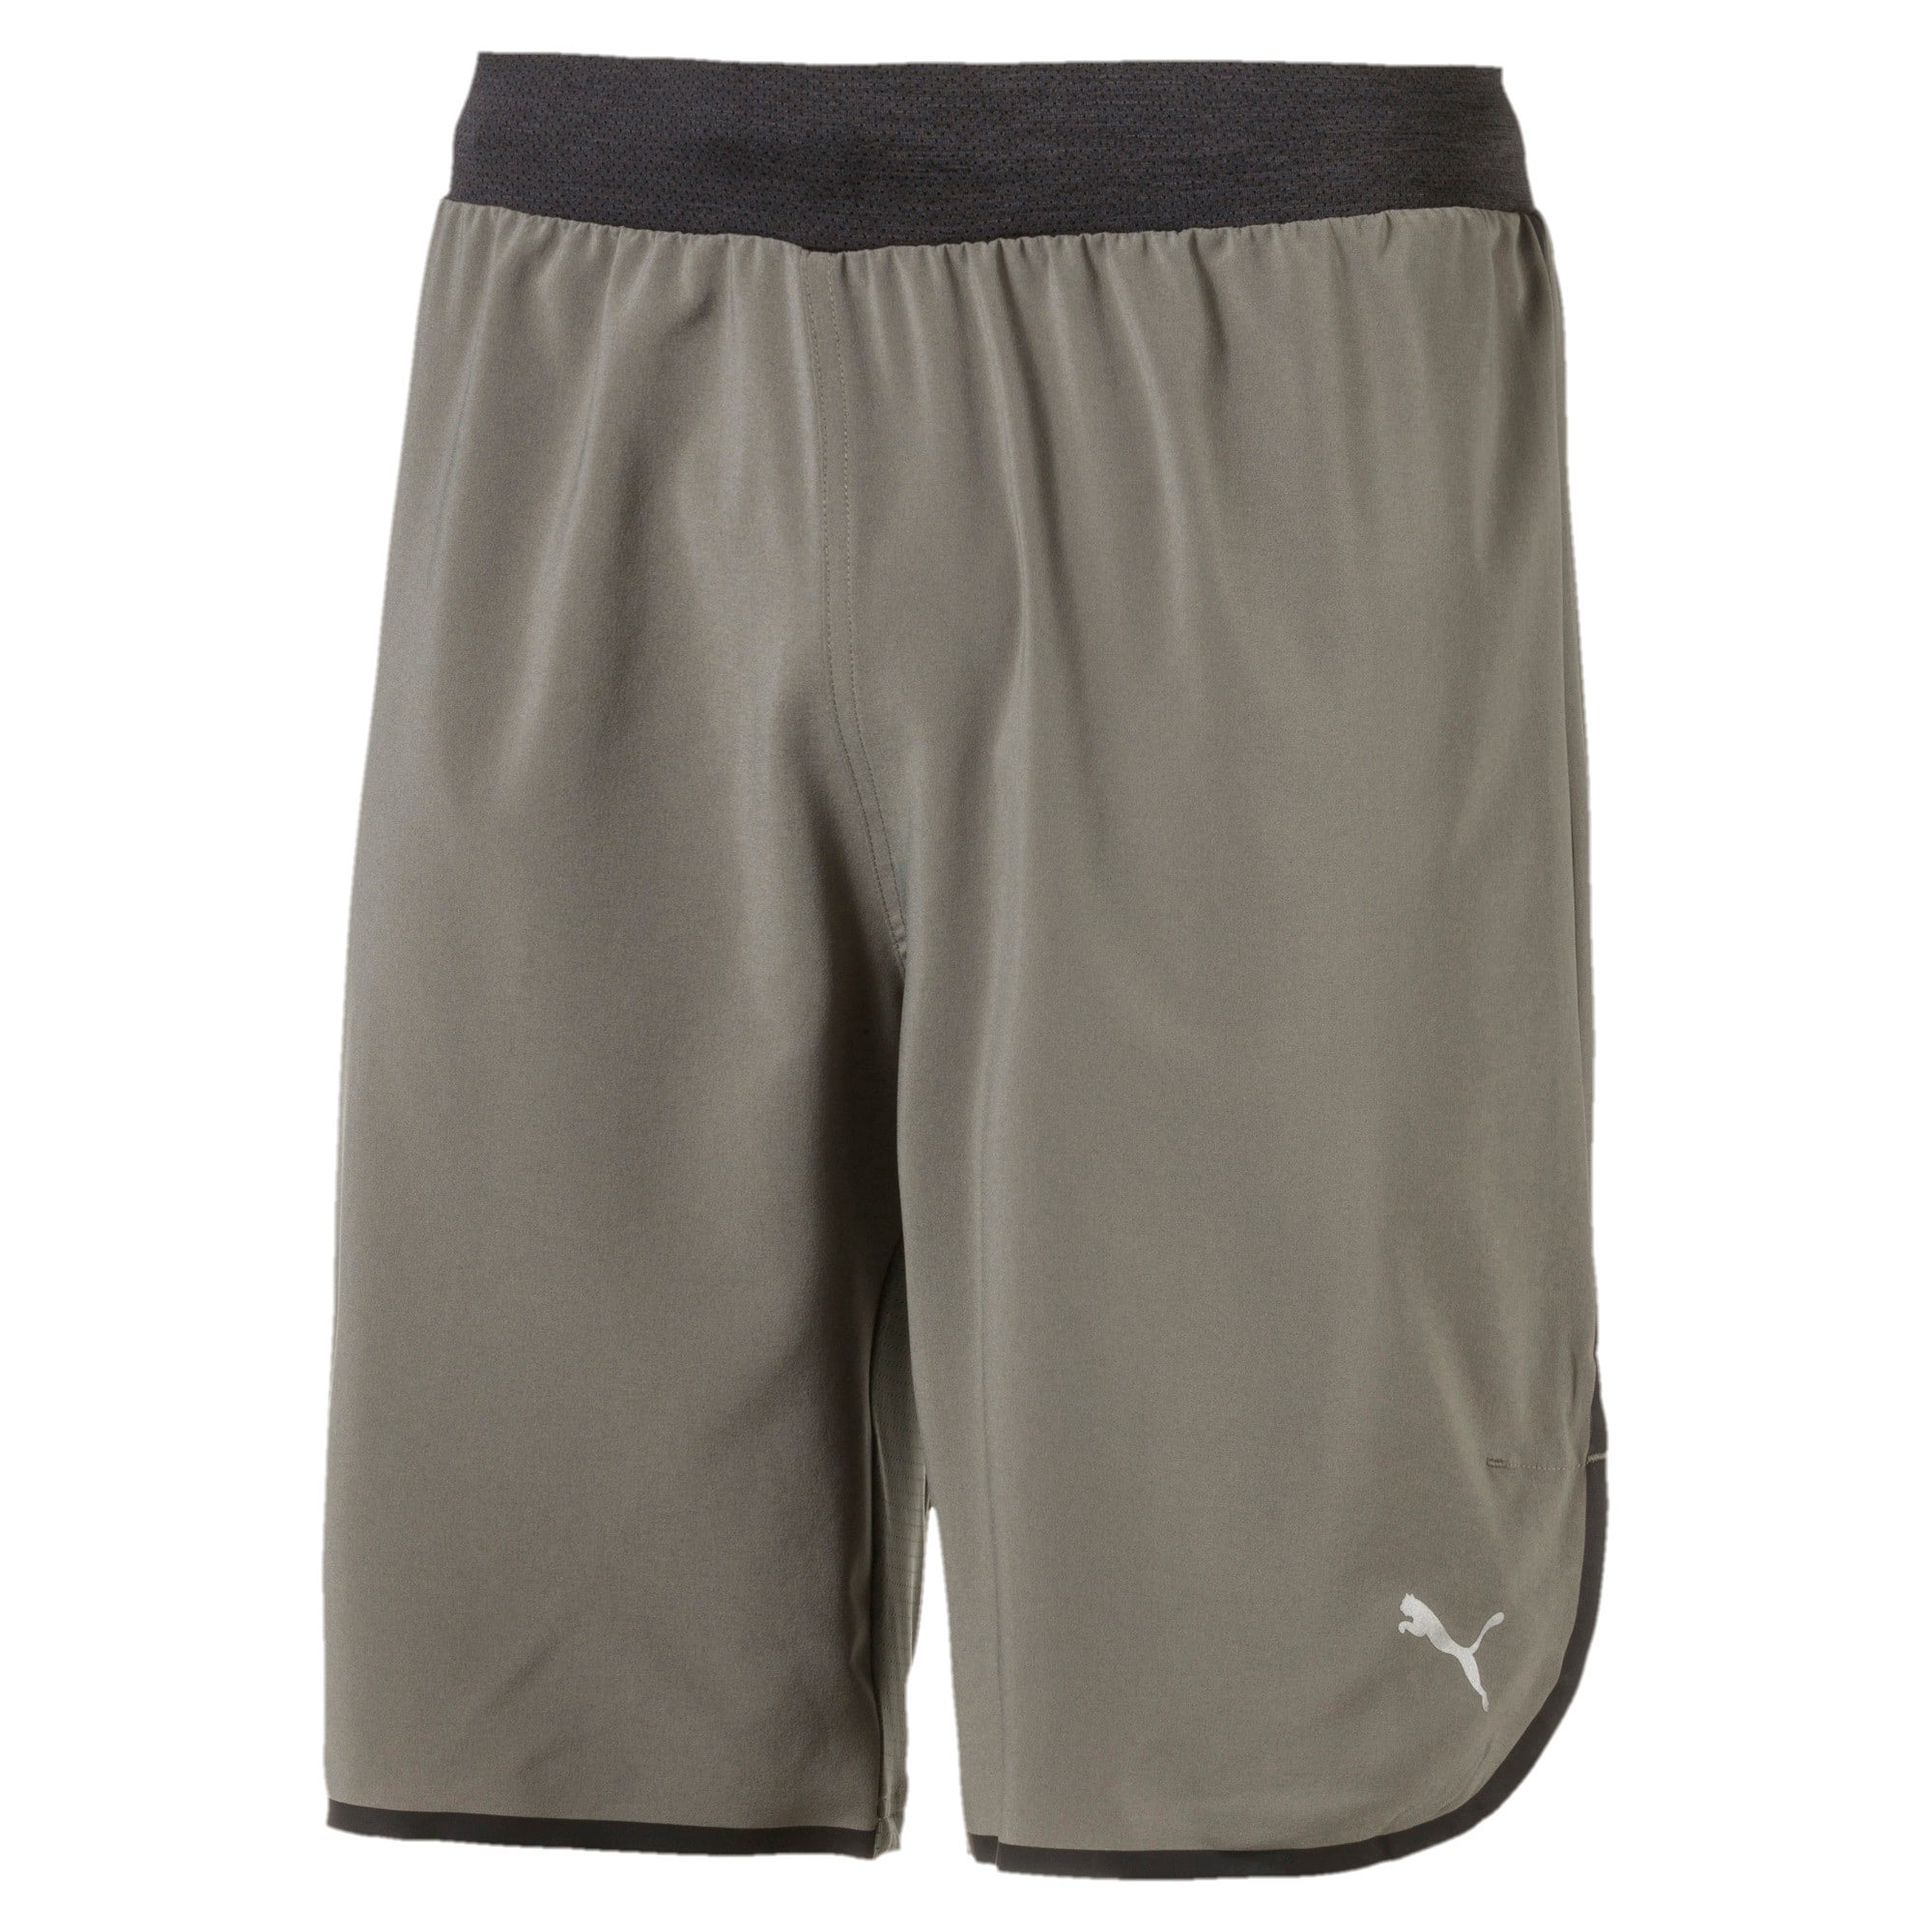 Thumbnail 5 of Energy Laser Shorts, Castor Gray-Dark GrayHeather, medium-IND